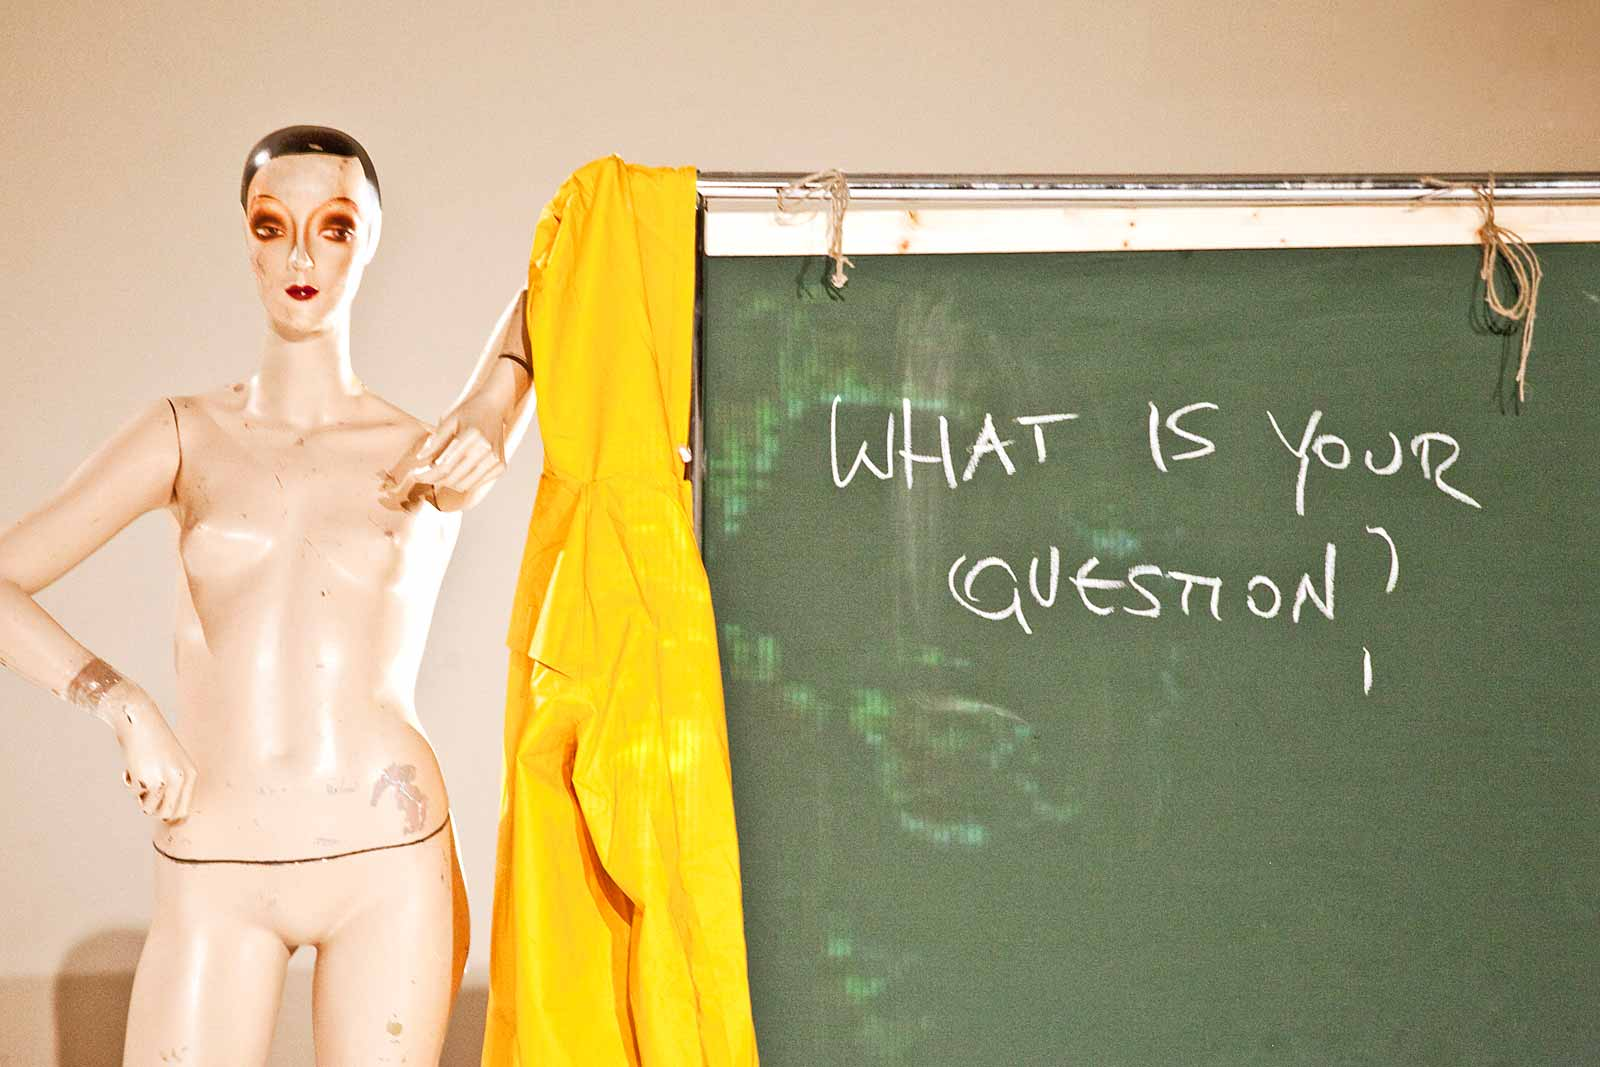 """Vintage mannequin leans jauntily against chalkboard on which is written: """"What is your Question?"""" (photo: Sven Hagolani)"""